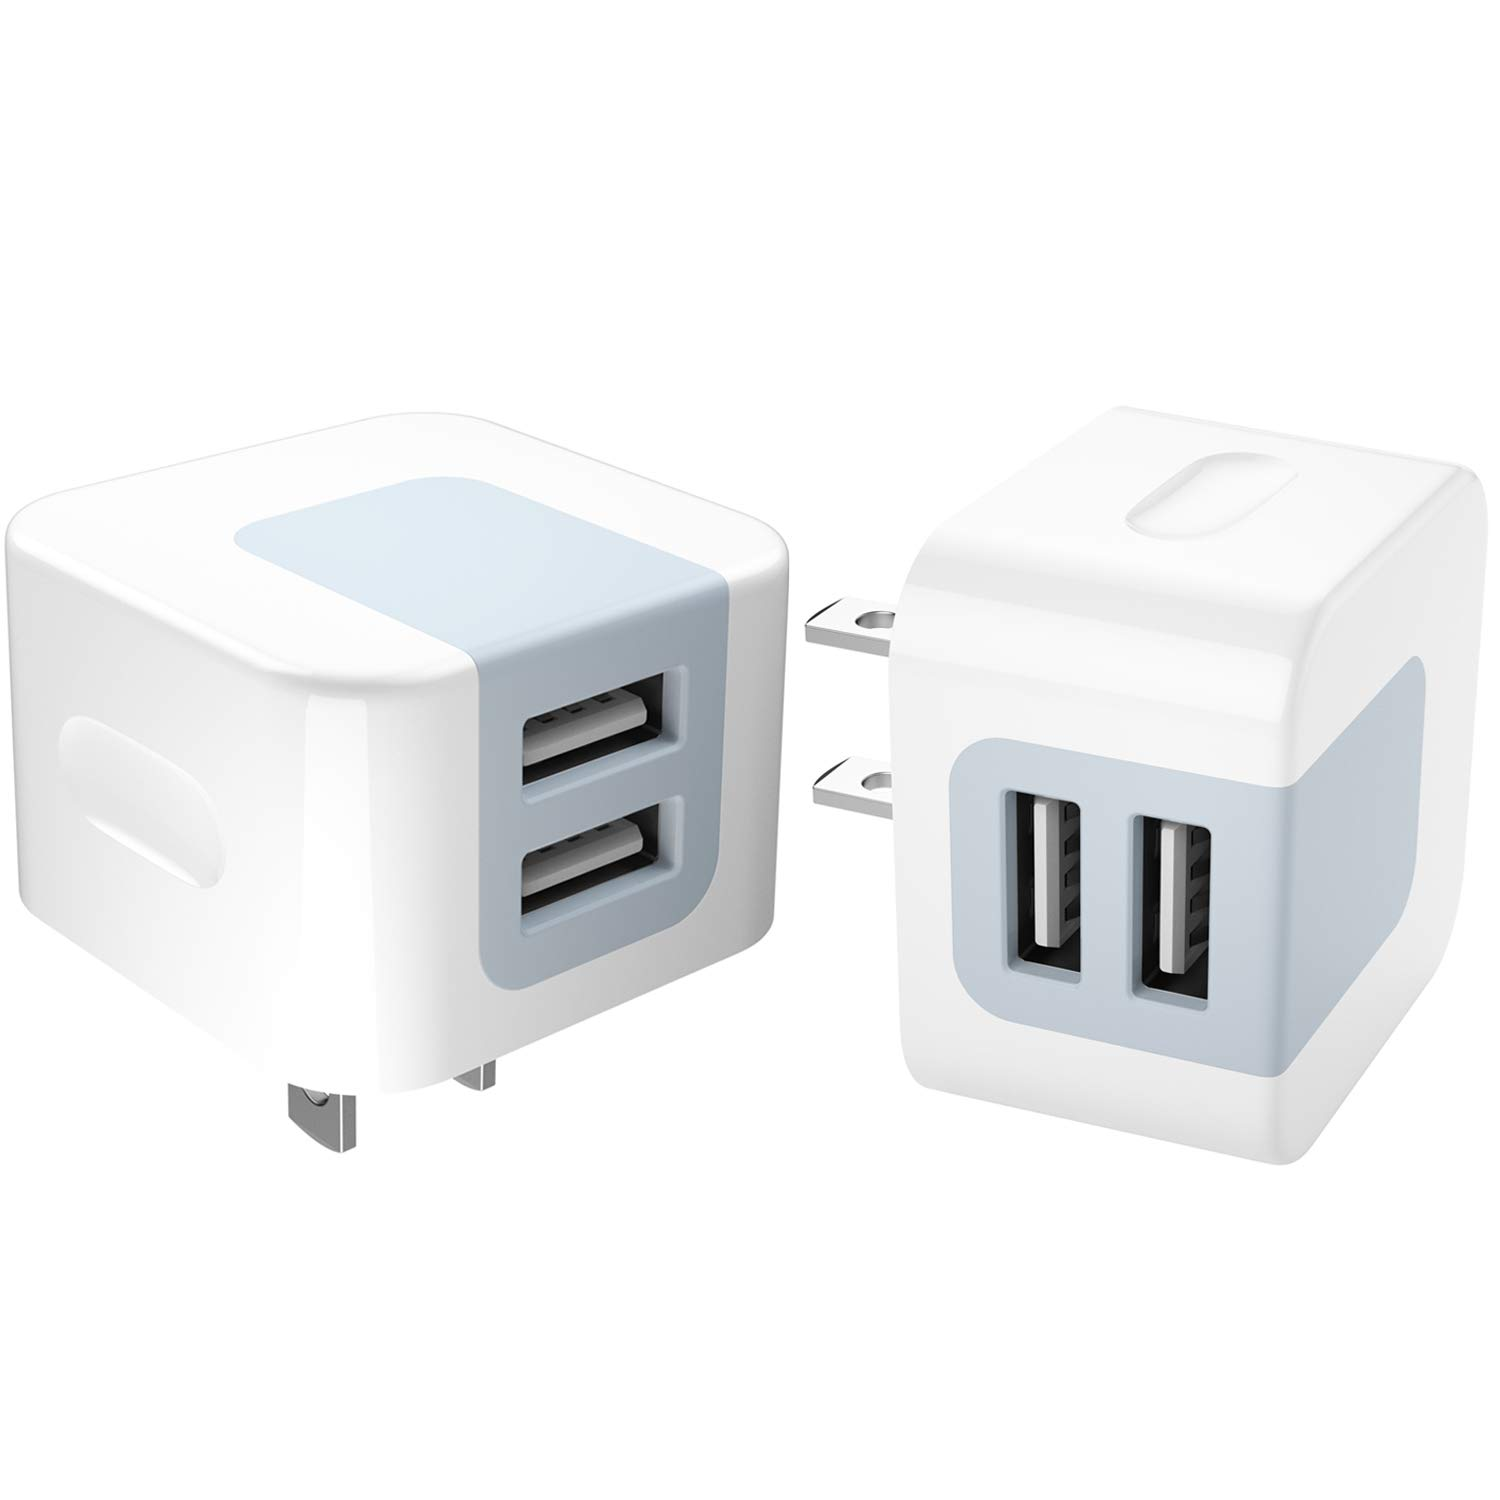 USB Charger, Dodoli 2-Pack 2.4A Dual Port 12W Wall Charger Adapter Plug Compatible iPhone X/XR / Xs/Xs Max /8/8 Plus/ 7 / 6S / 6S Plus, ipad,Samsung Galaxy HTC, Moto, Huawei More TONGXINGRUI X-180531-2